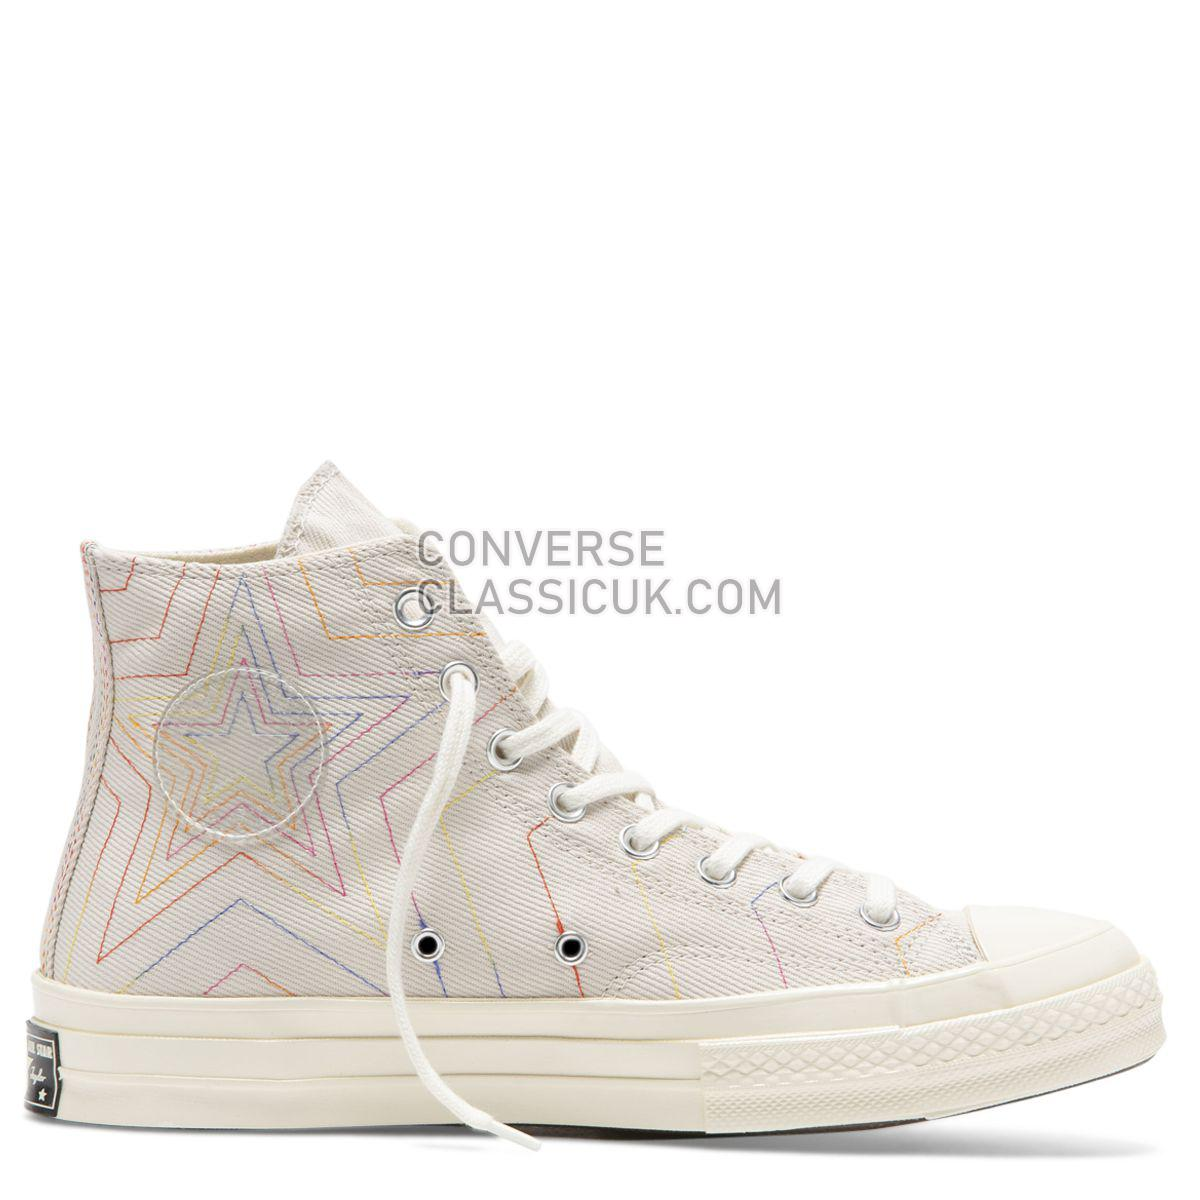 Converse Chuck Taylor All Star 70 Rainbow High Top White Mens Womens Unisex 164965 White/Pale Putty/Egret Shoes